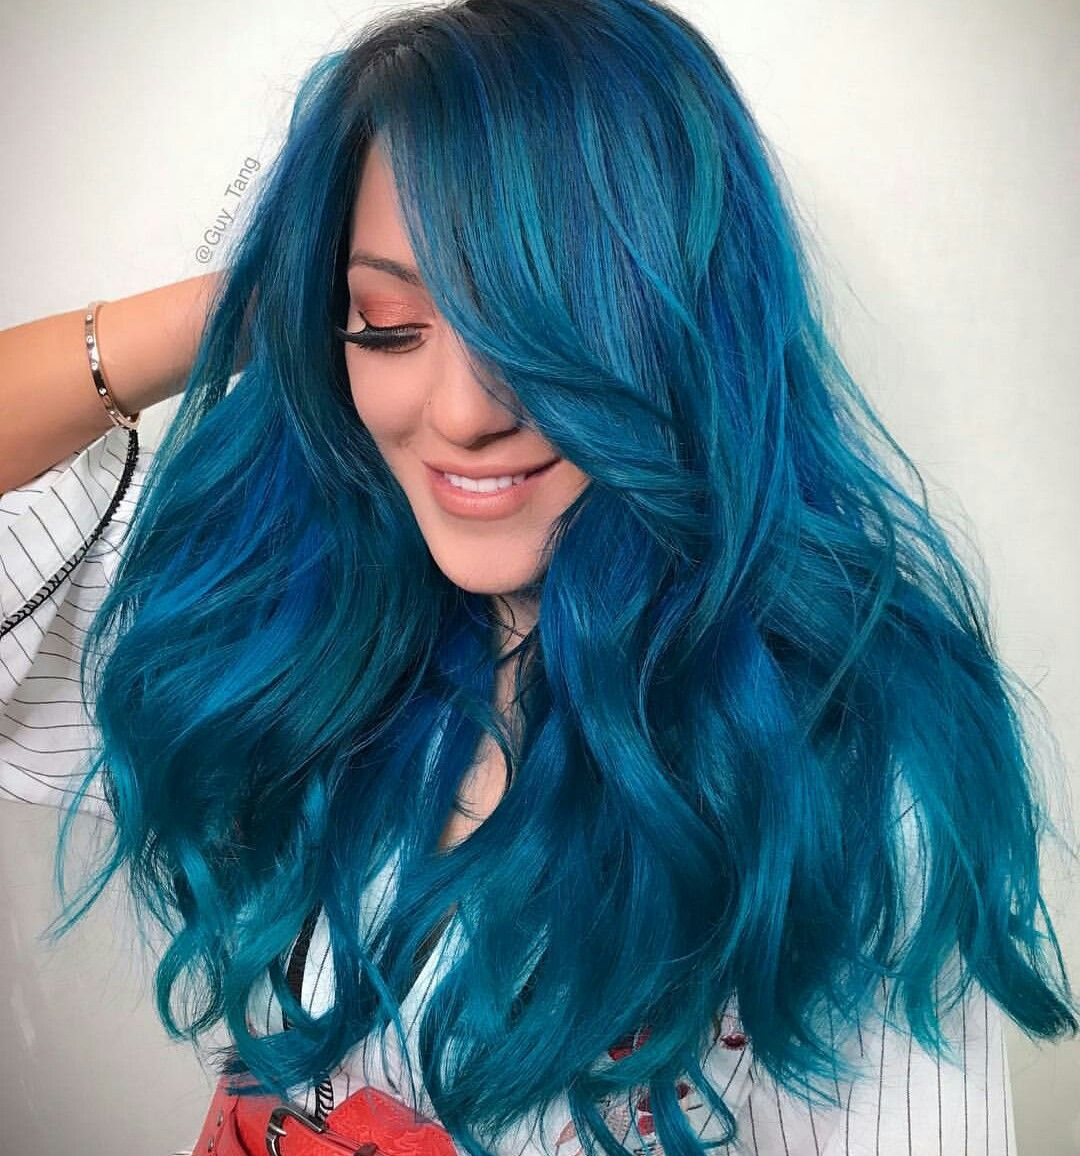 Niki demartino blue hairstyle cute hair colors pinterest blue